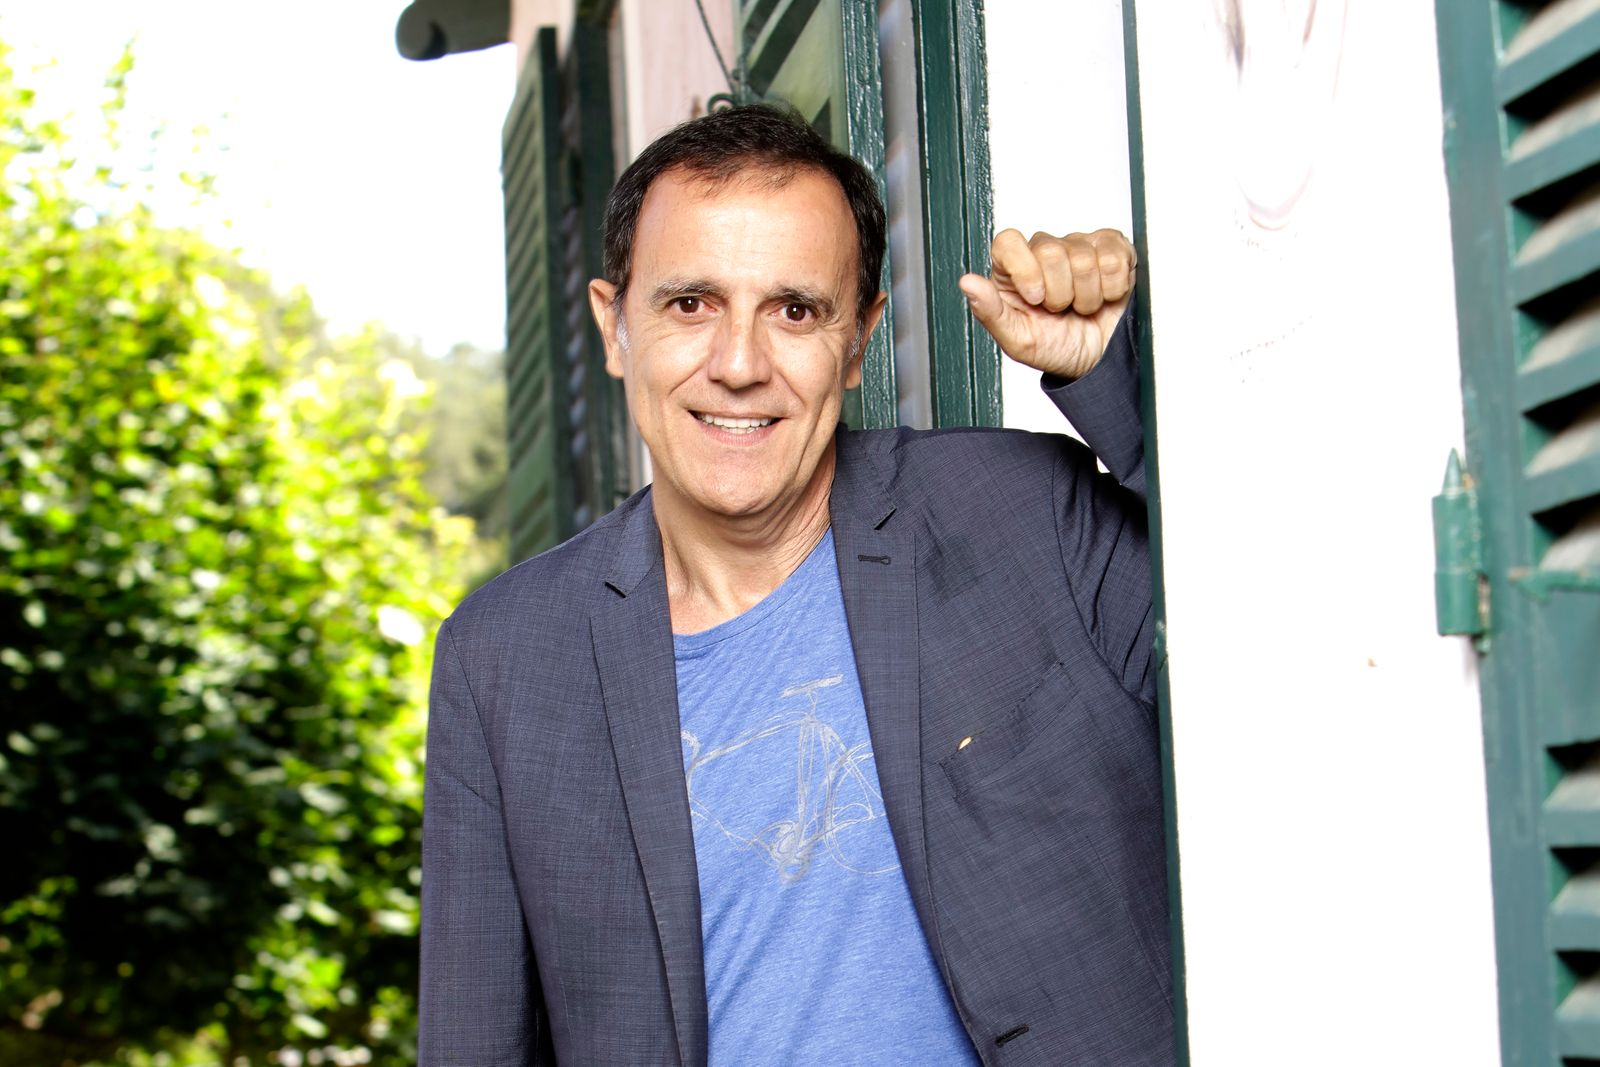 Le présentateur Thierry Beccaro | Photo : Getty Images.